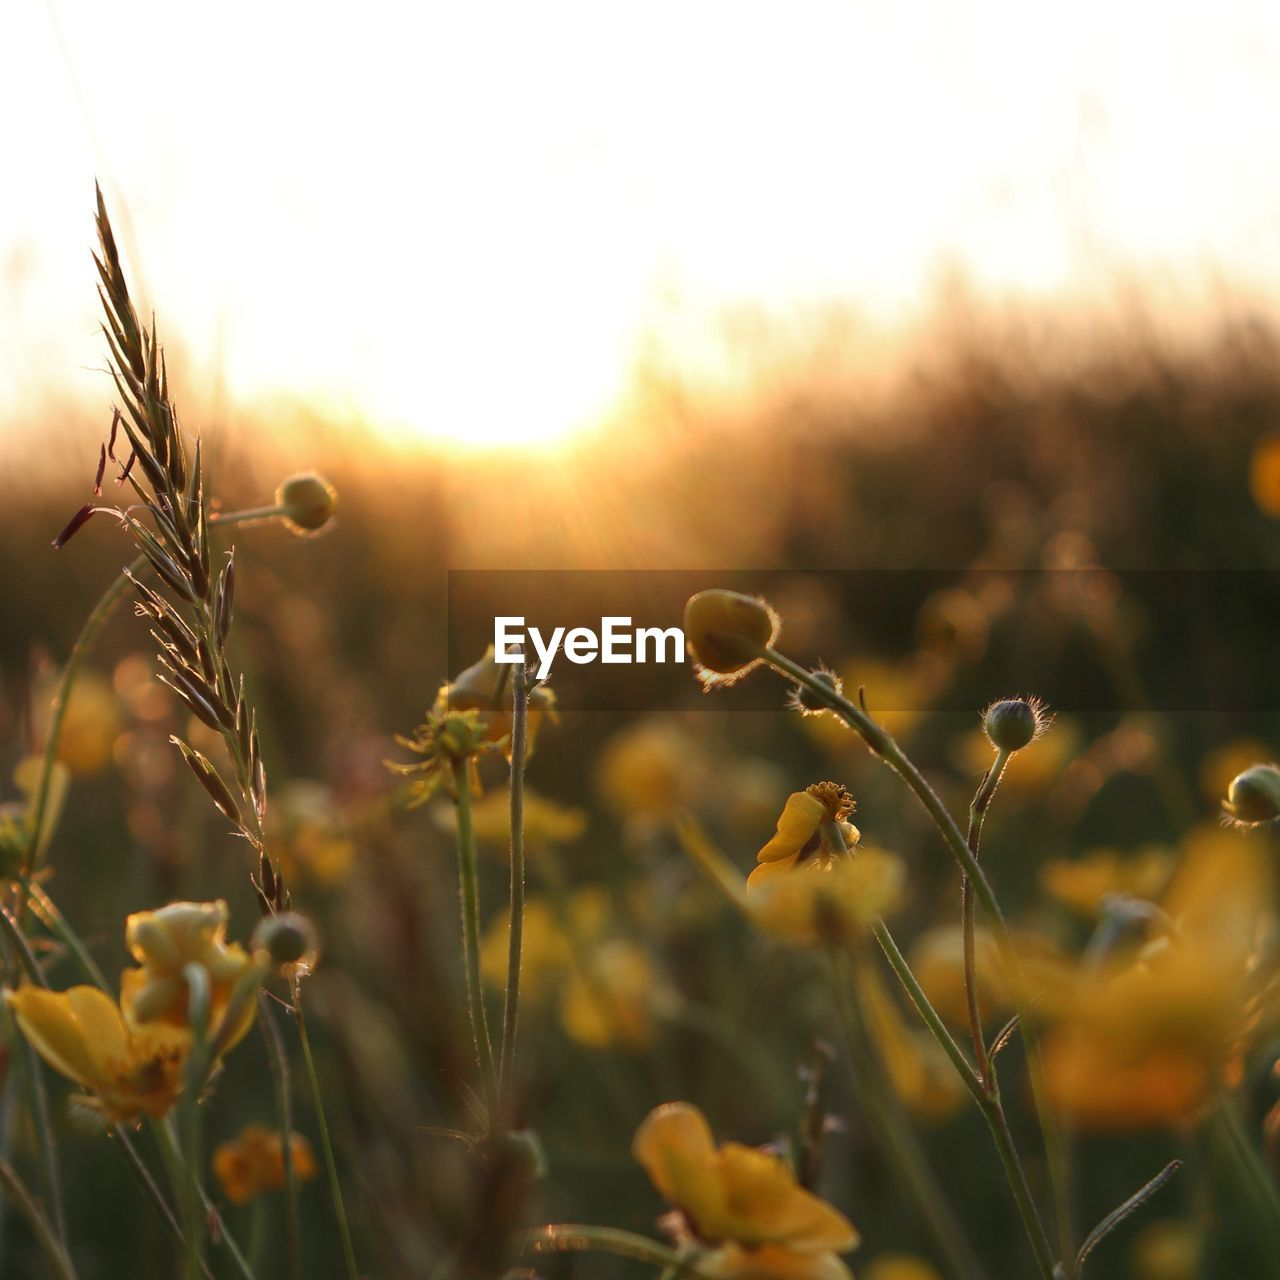 growth, plant, beauty in nature, nature, close-up, tranquility, no people, selective focus, sunlight, sky, field, day, focus on foreground, land, fragility, sunset, outdoors, flower, vulnerability, crop, lens flare